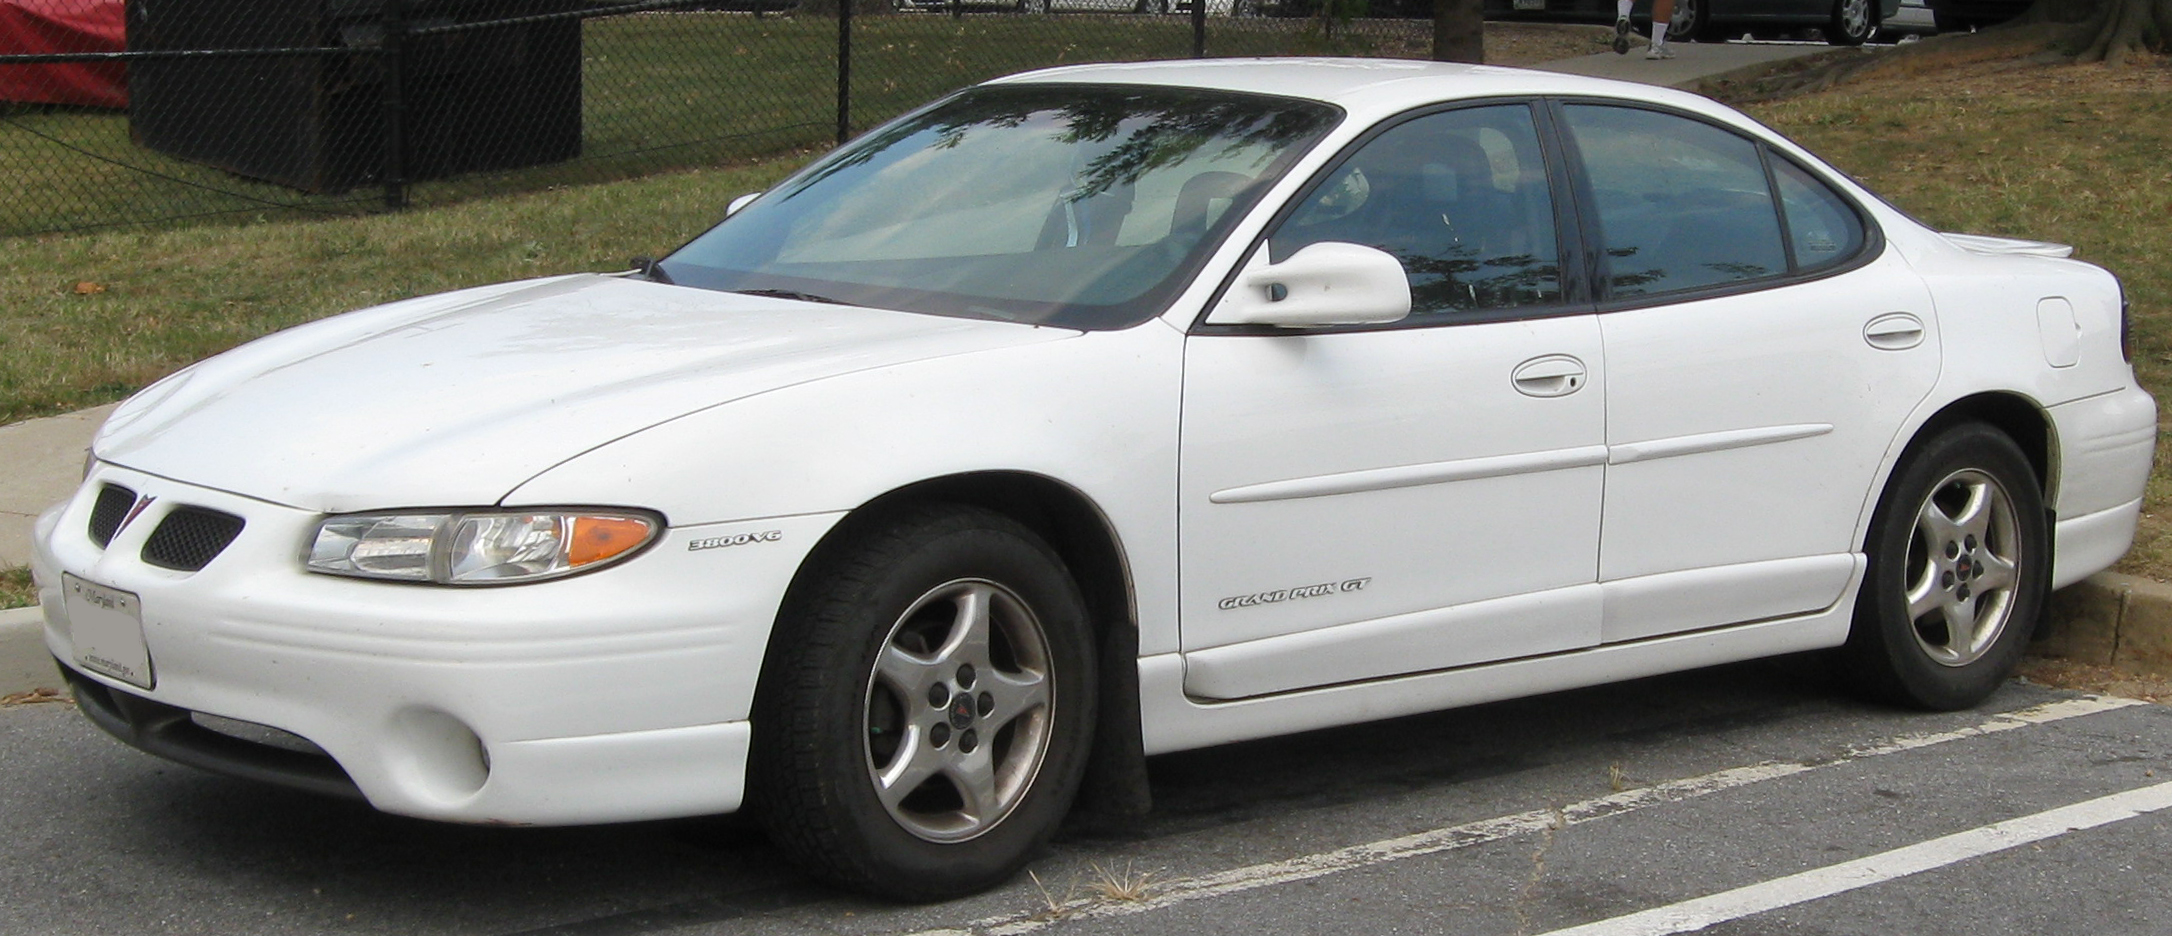 File:Pontiac Grand Prix GT sedan -- 09-22-2010.jpg